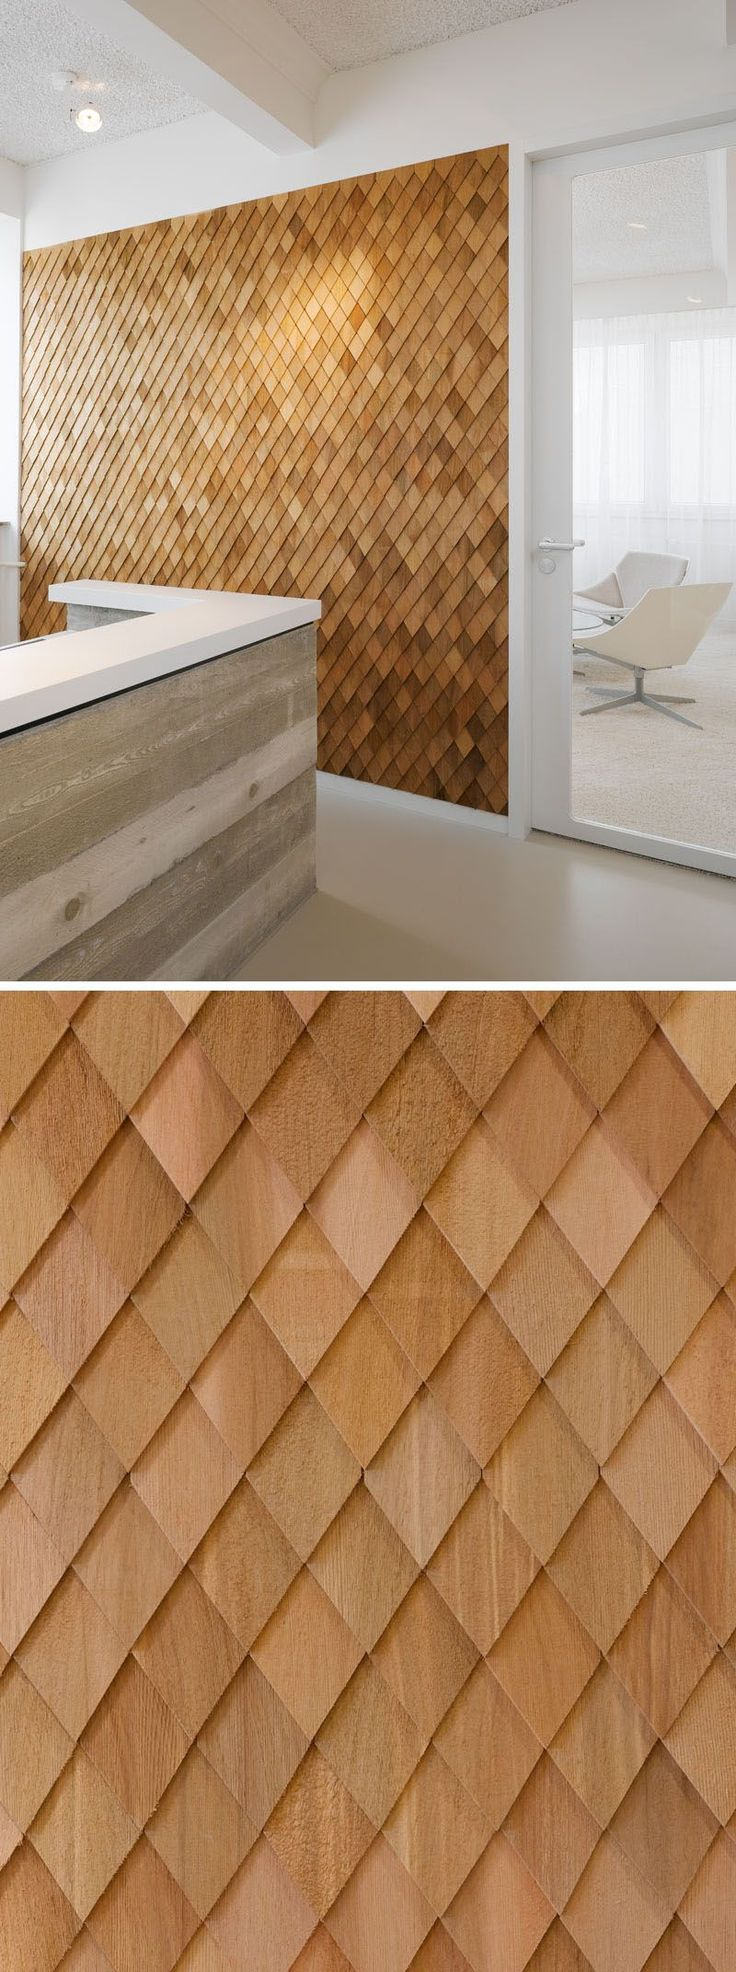 Modern Wood Wall In Mobile Home: Best 25+ Modern Wall Paneling Ideas On Pinterest